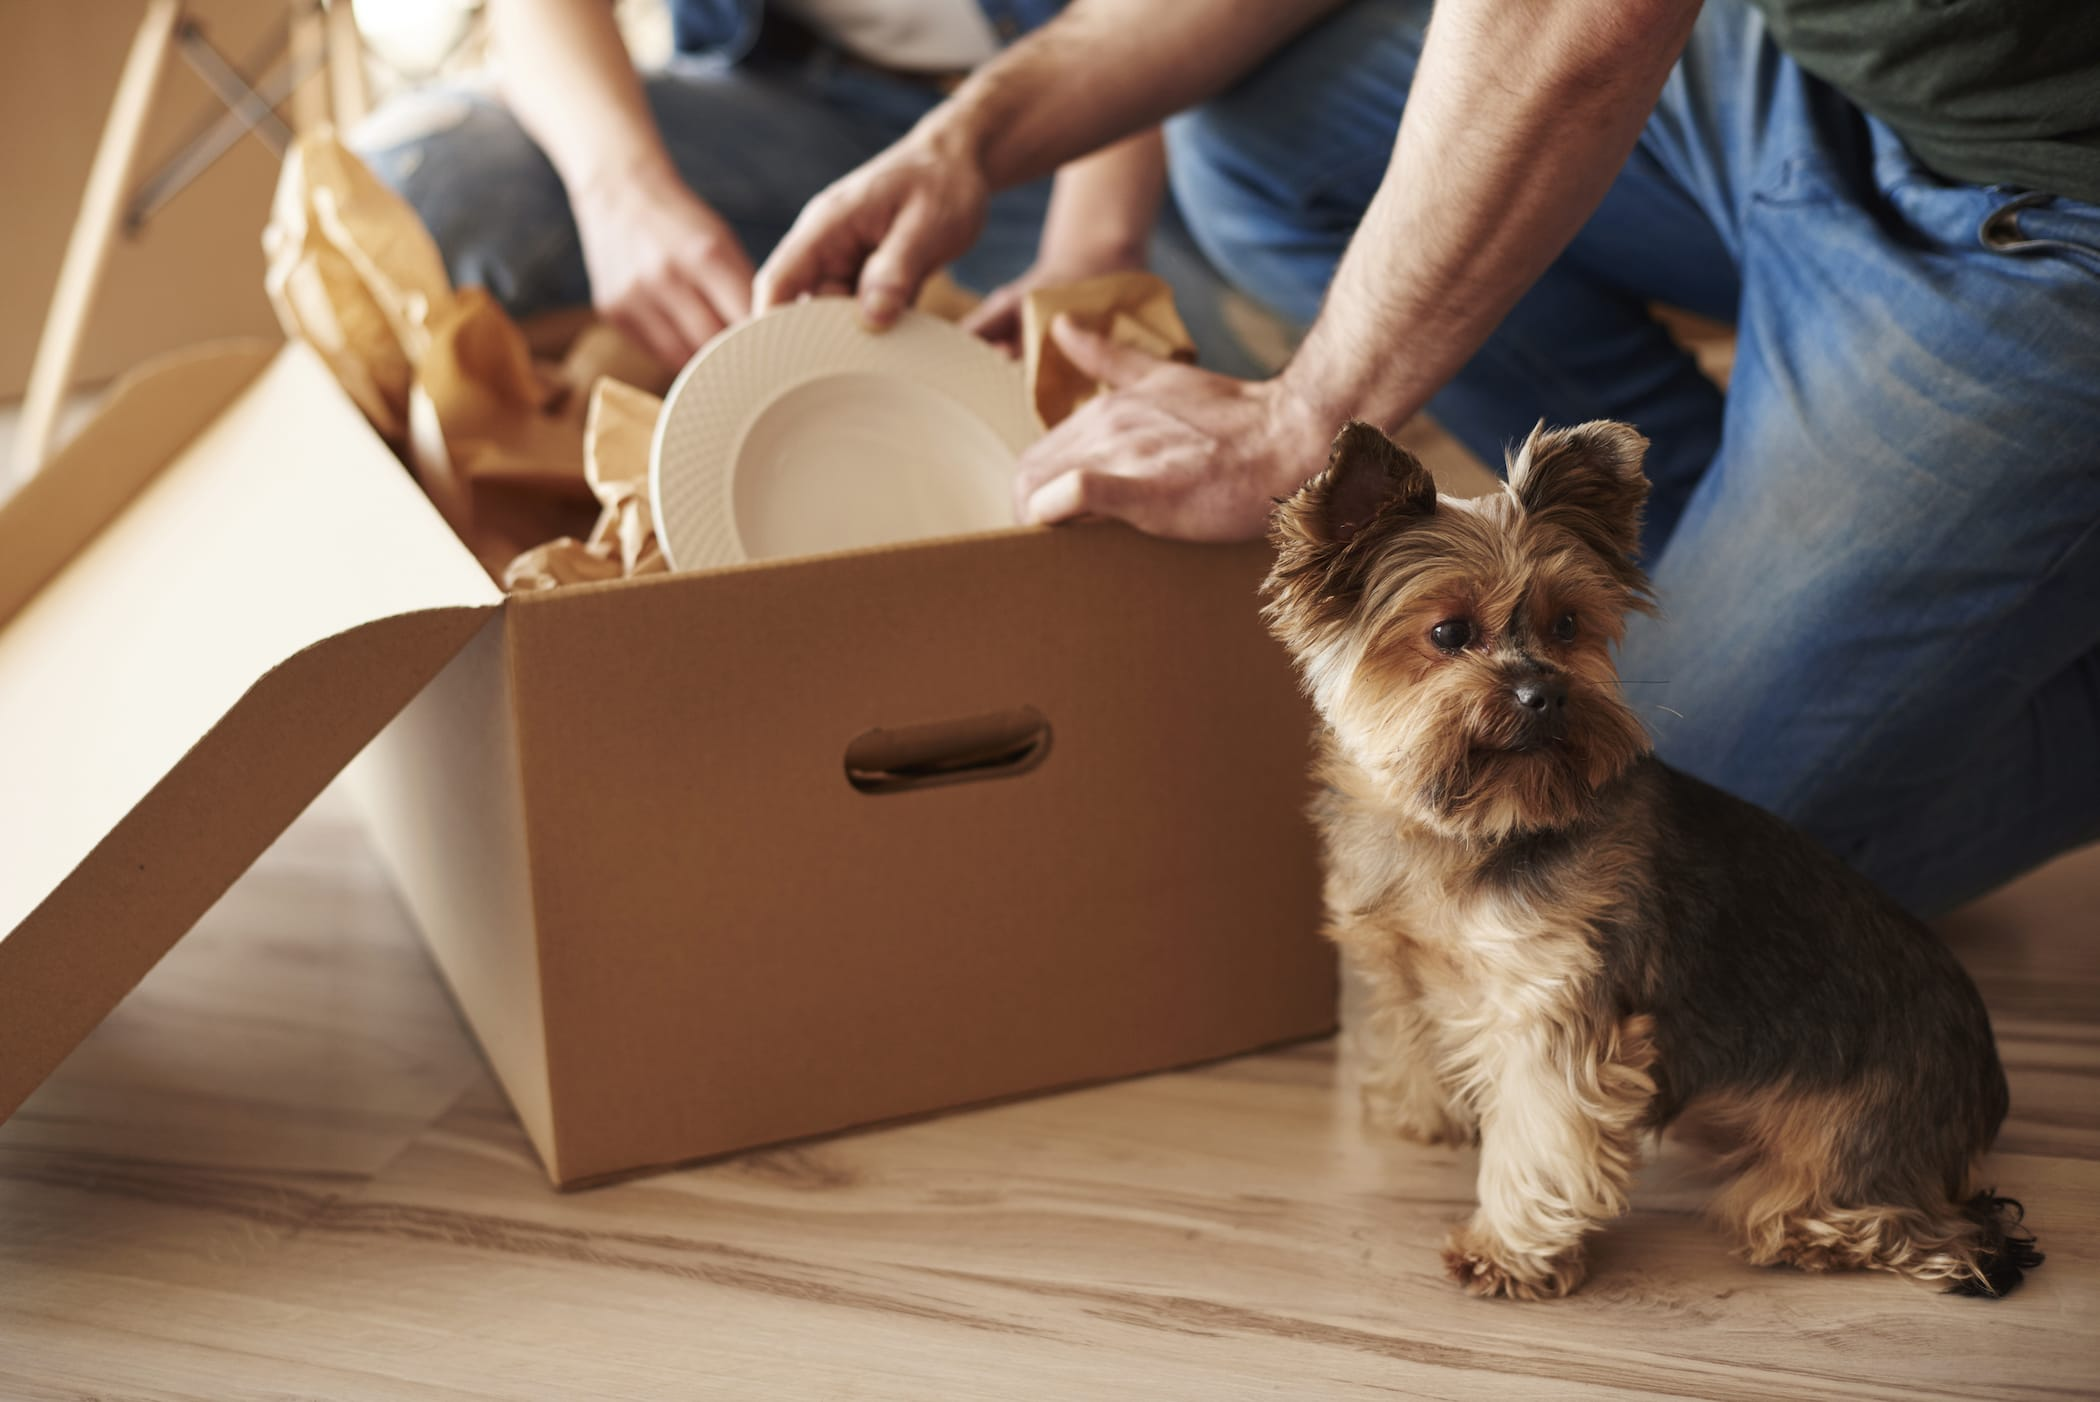 Items to pack first during shifting